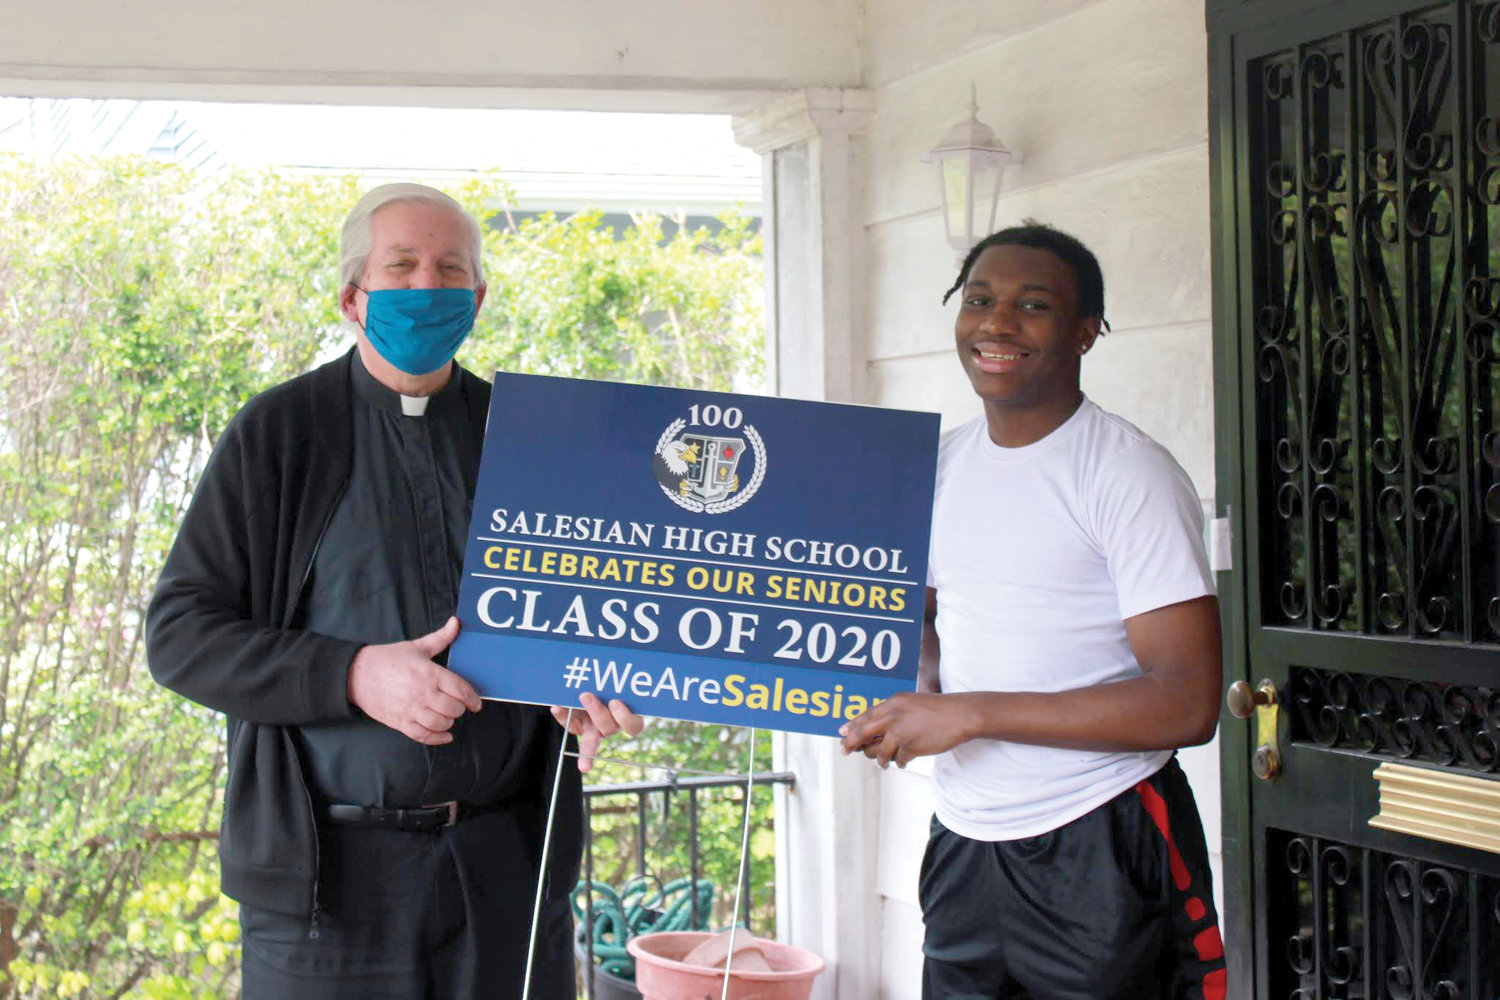 PRESIDENTIAL VISIT—Father John Serio, S.D.B., presents a Salesian High School Class of 2020 lawn sign to senior Elijah Woods. Father Serio, president of Salesian High School, delivered the lawn signs over an 11-day period to the homes of Salesian's graduating seniors, who have not attended class in the New Rochelle school building since March 12 due to the coronavirus pandemic.